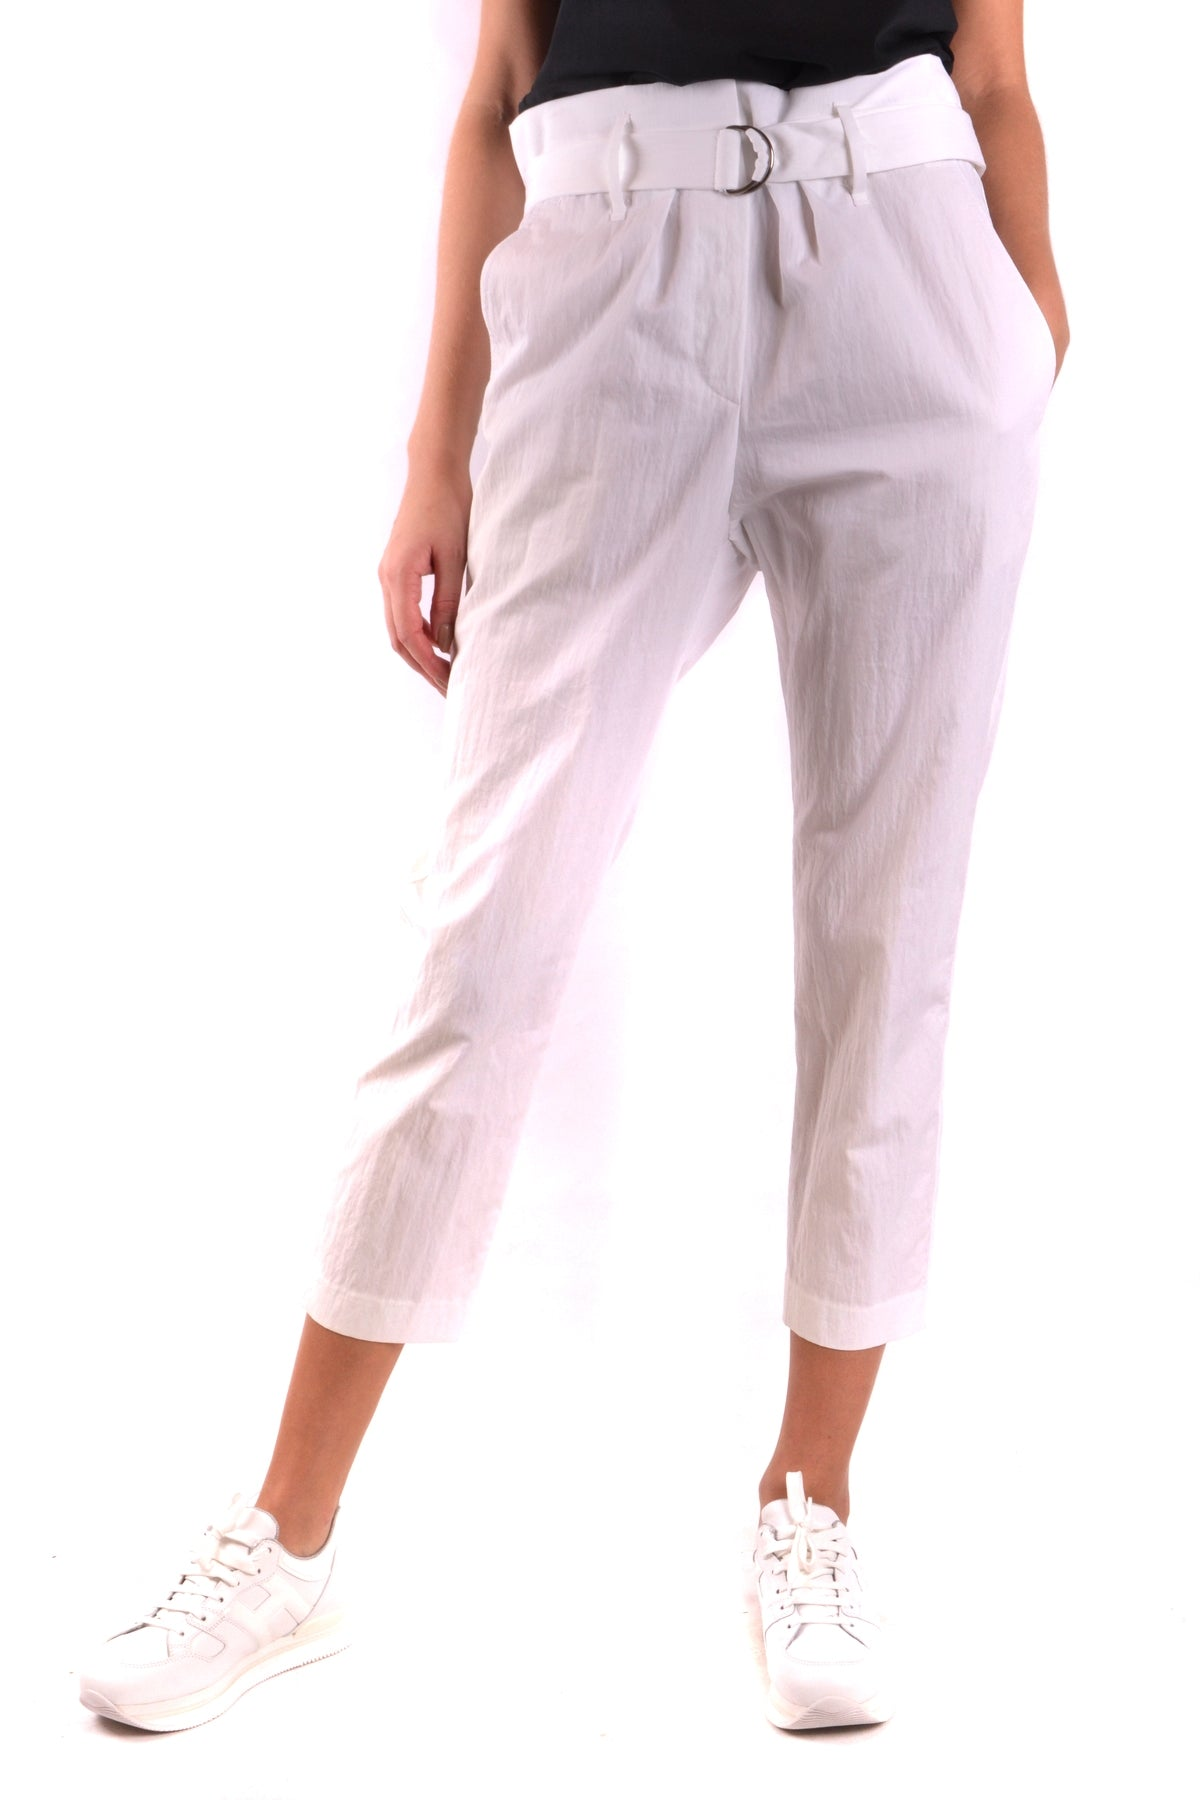 Trousers Brunello Cucinelli-Trousers - WOMAN-Product Details Terms: New With LabelYear: 2018Main Color: WhiteGender: WomanMade In: ItalyManufacturer Part Number: M0F 48P6588 C159Size: ItSeason: Spring / SummerClothing Type: TrousersComposition: Cotton 95%, Polyamide 5%-Keyomi-Sook